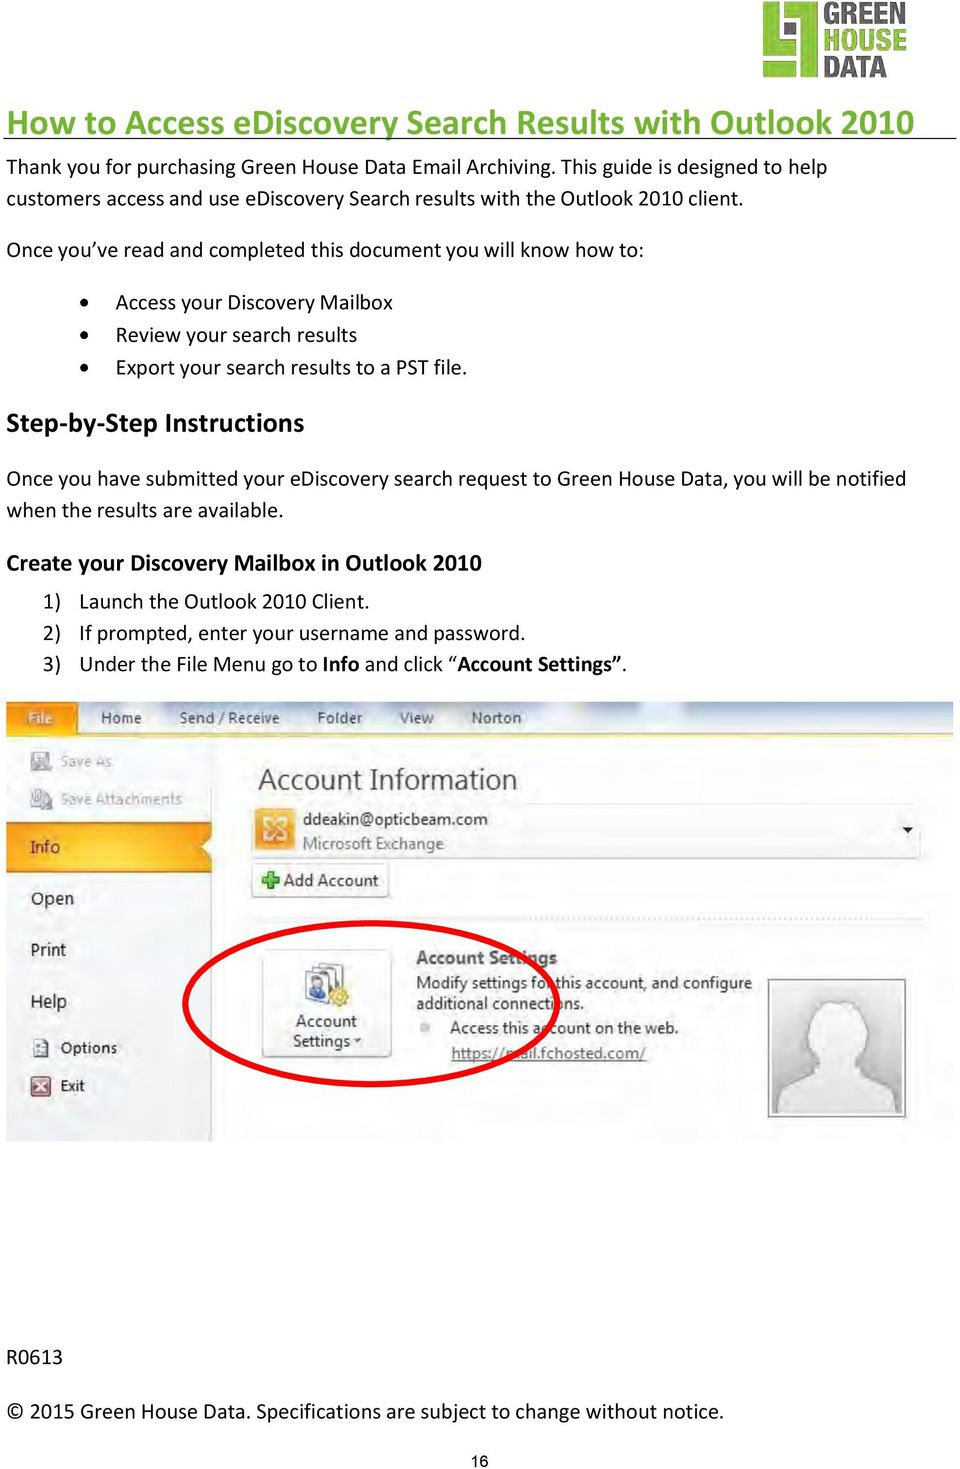 Once you ve read and completed this document you will know how to: Access your Discovery Mailbox Review your search results Export your search results to a PST file.